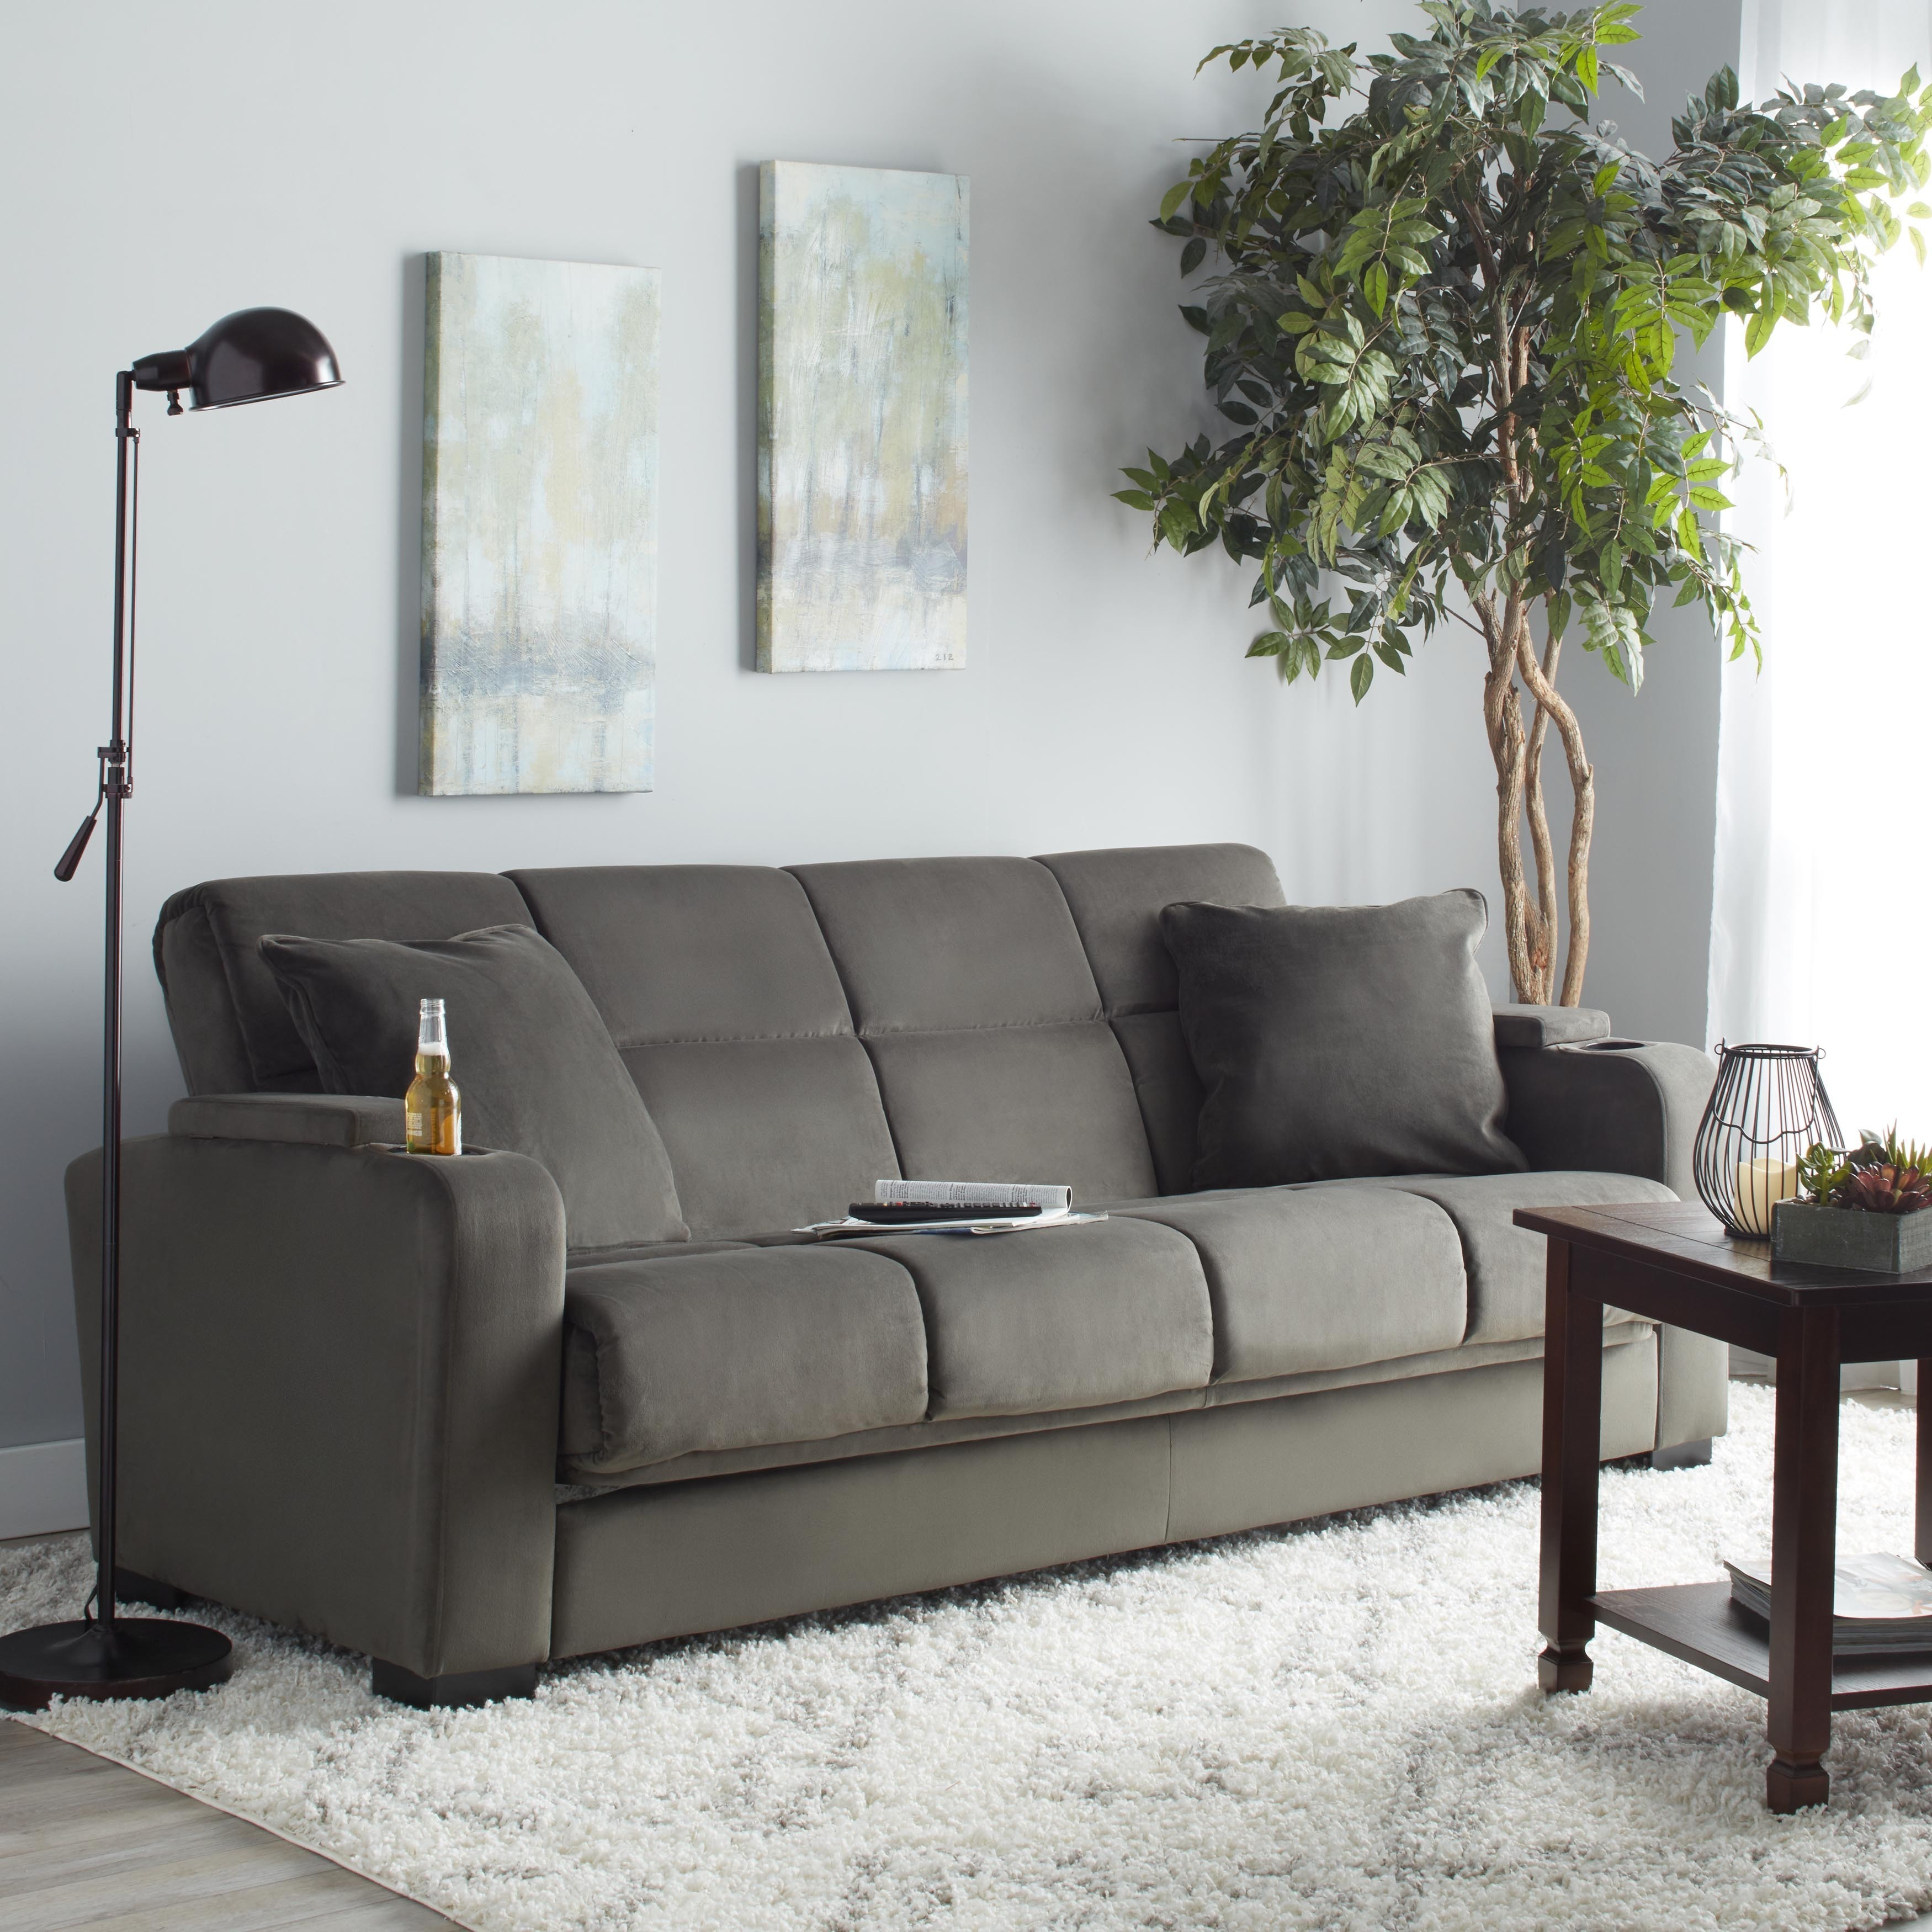 buy sofas couches online at overstock our best living room rh overstock com overstock.com sleeper sofas overstock.com outdoor sofas